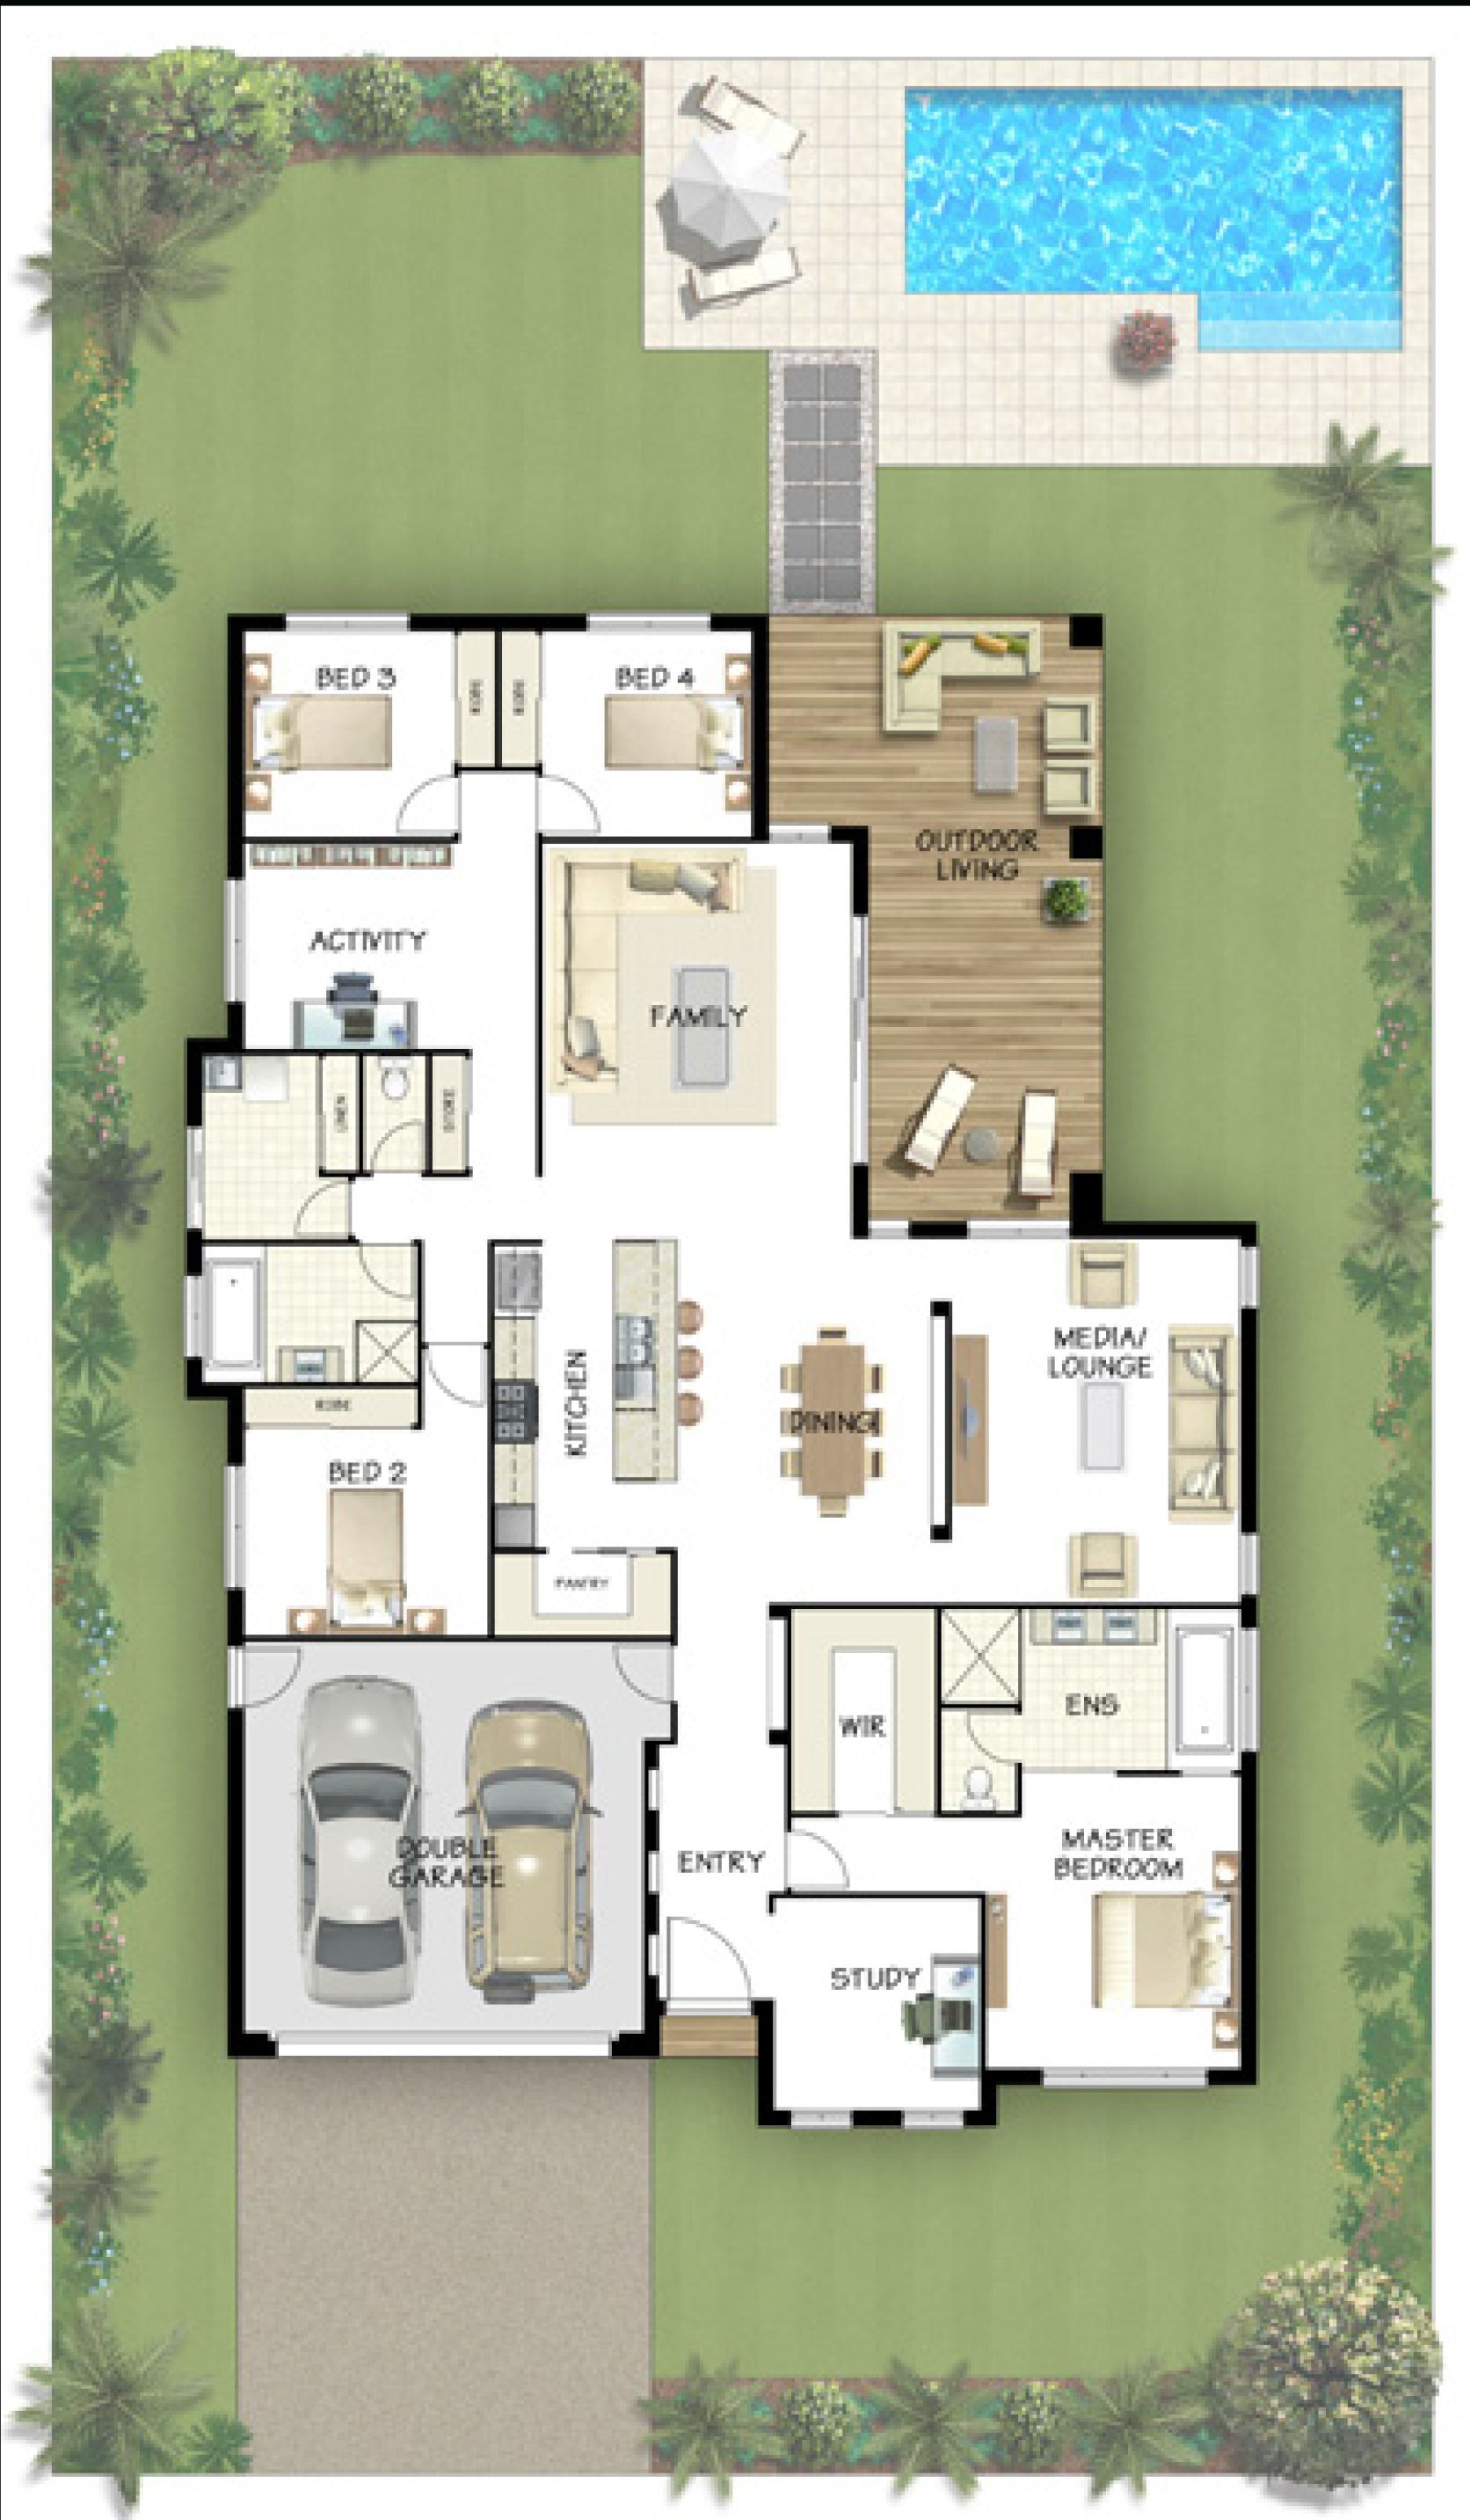 5 Bedroom Potential I Like The Media Room Placement And There S A Study I Like The Master Up Front And The Other House Layouts House Plans Dream House Plans